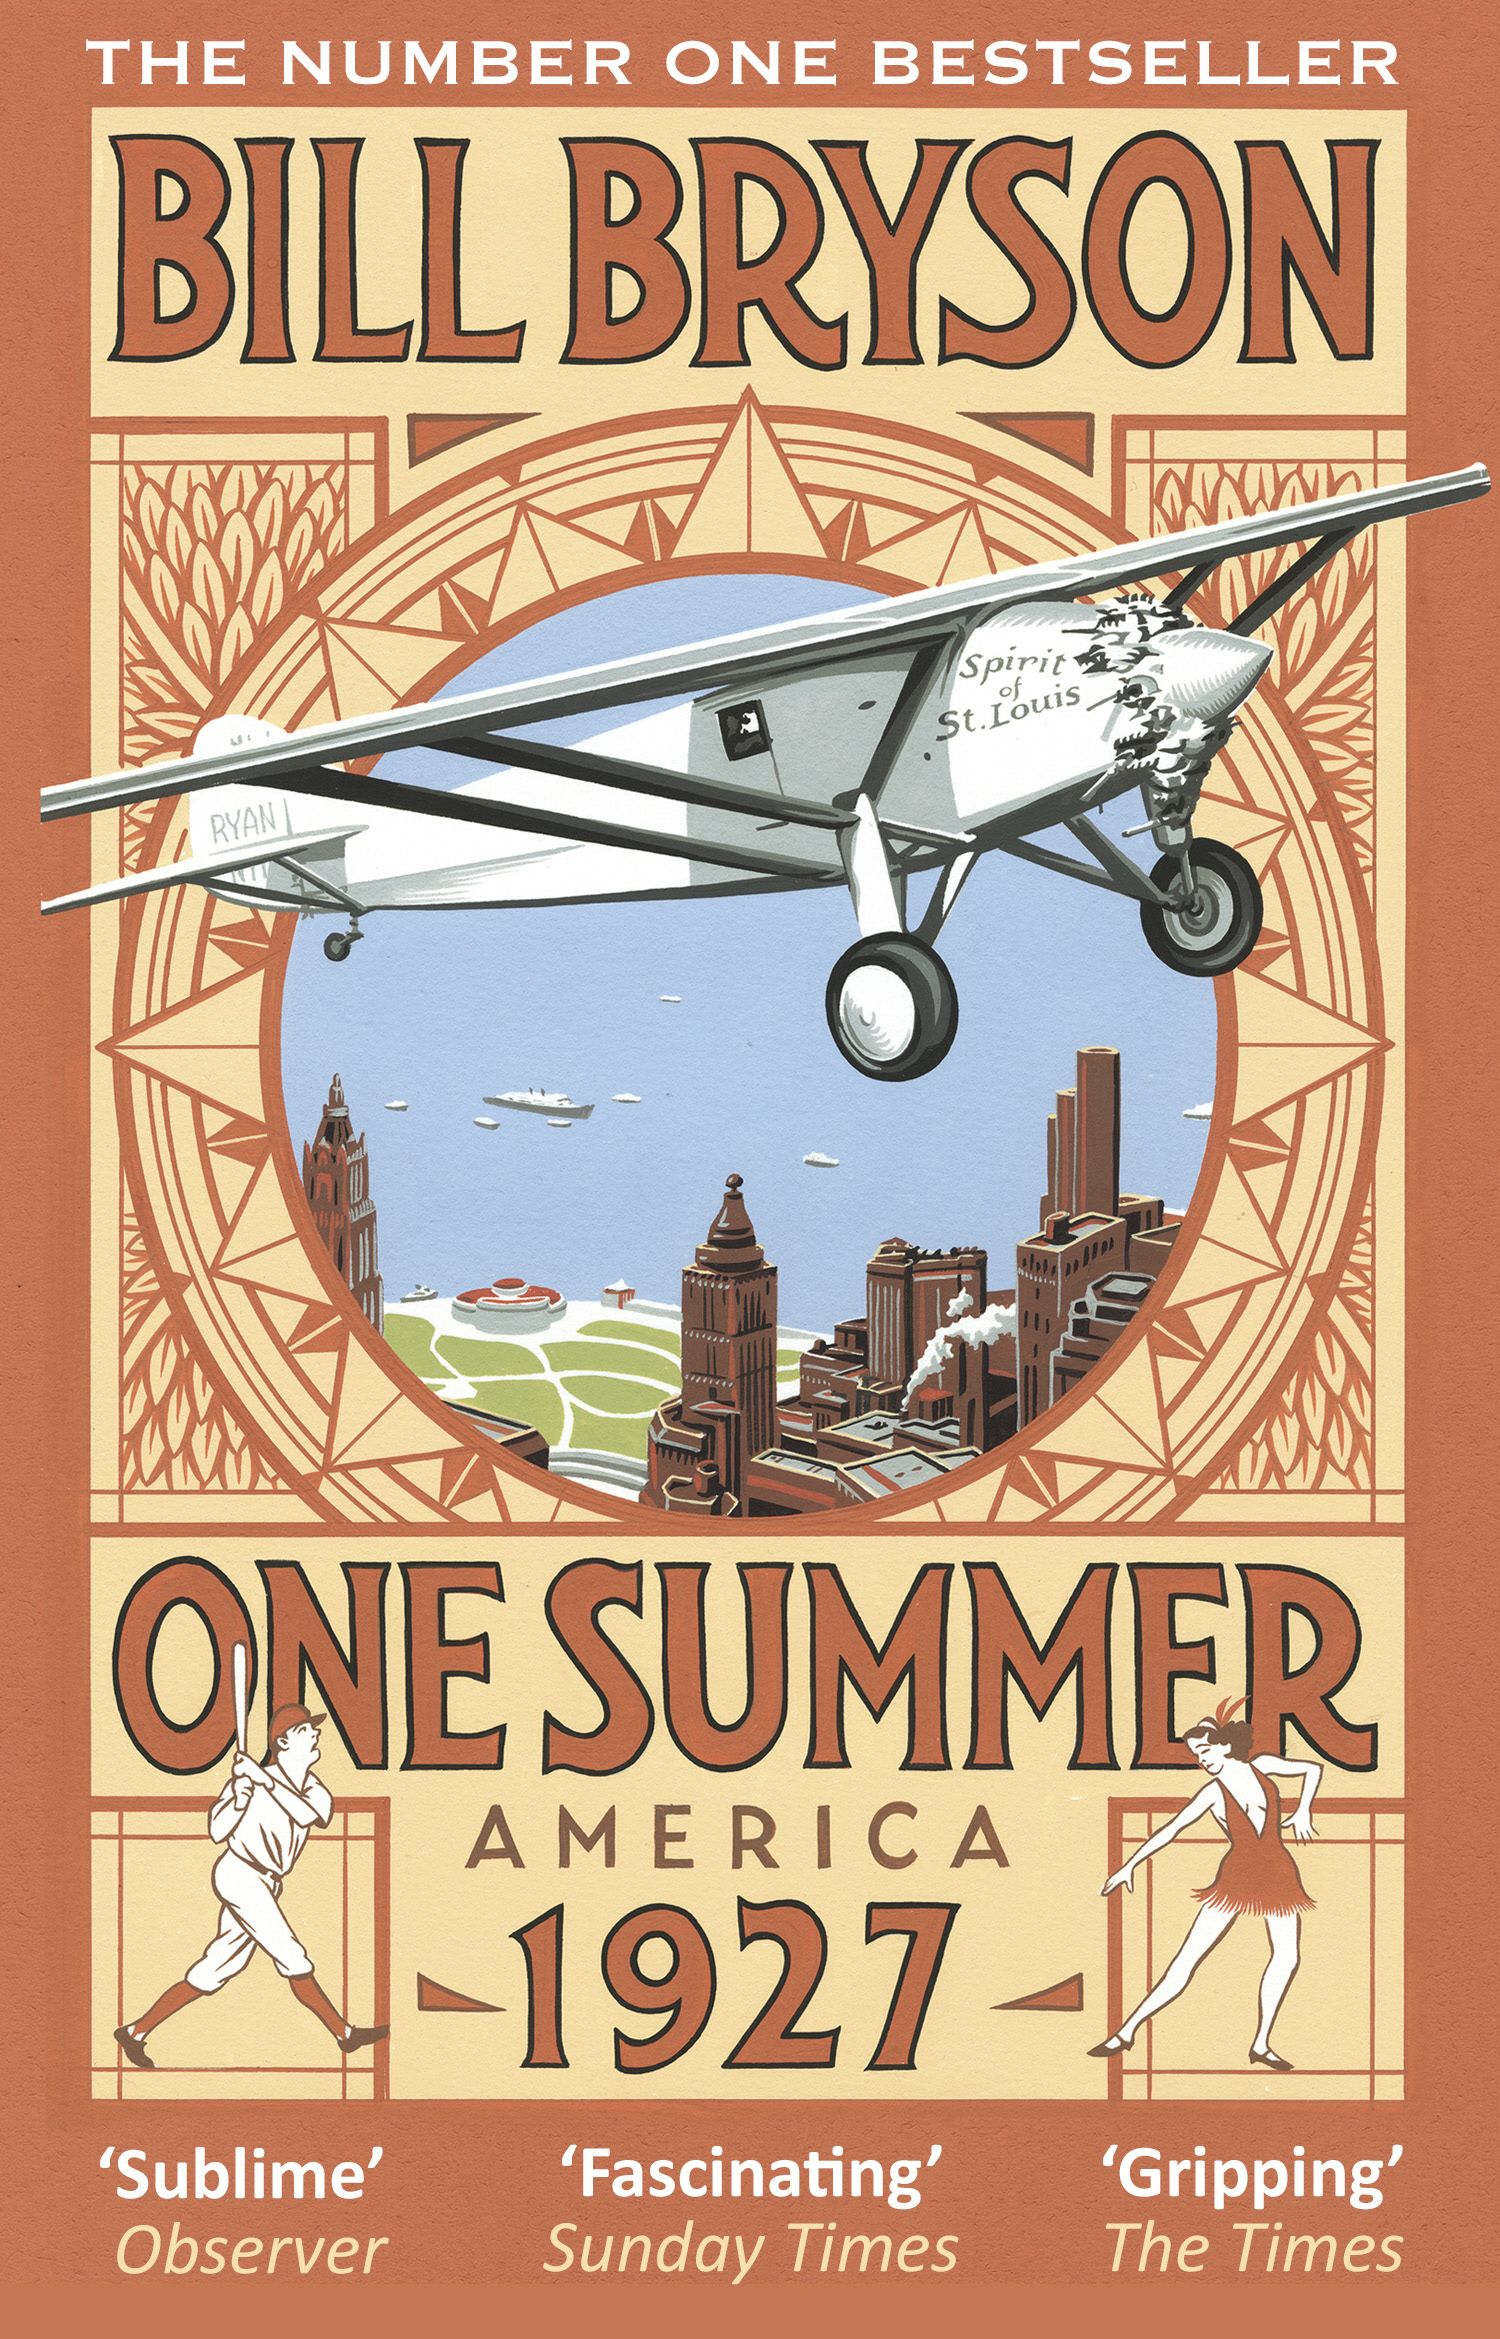 Bill Bryson Travels Back In Time To Summer 1927 In America The